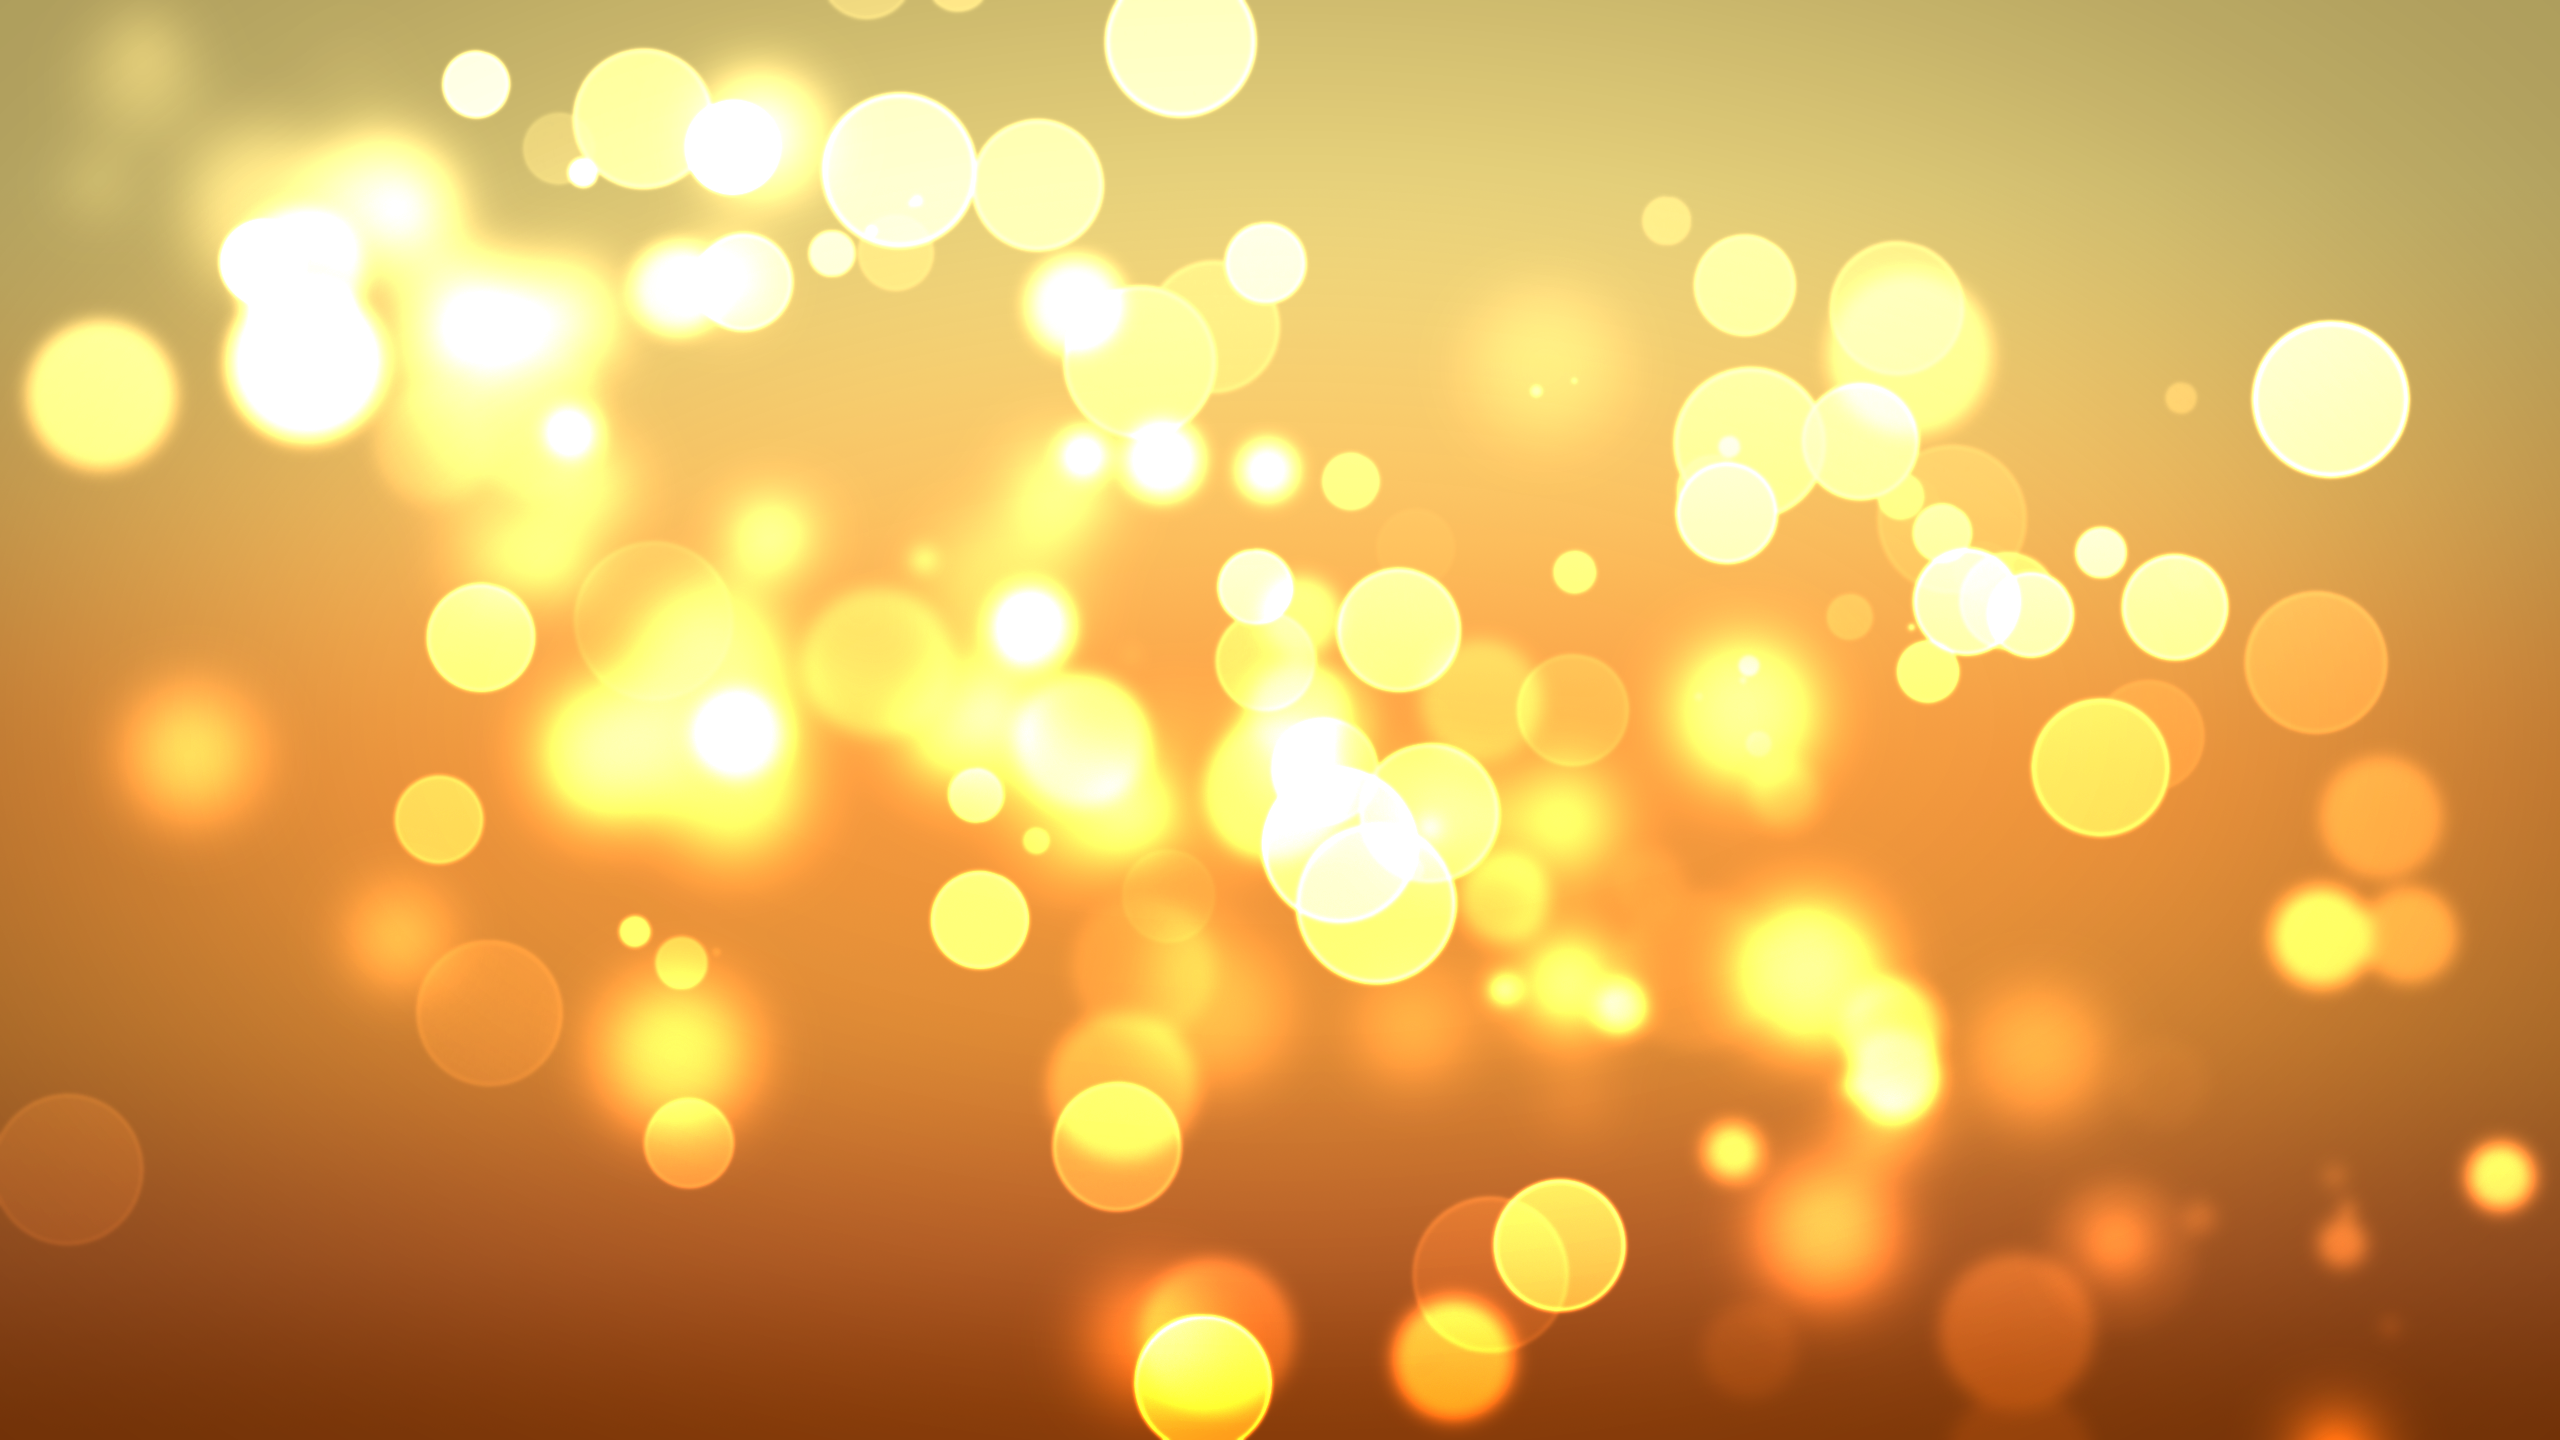 abstract artwork bokeh circles close-up gold best widescreen